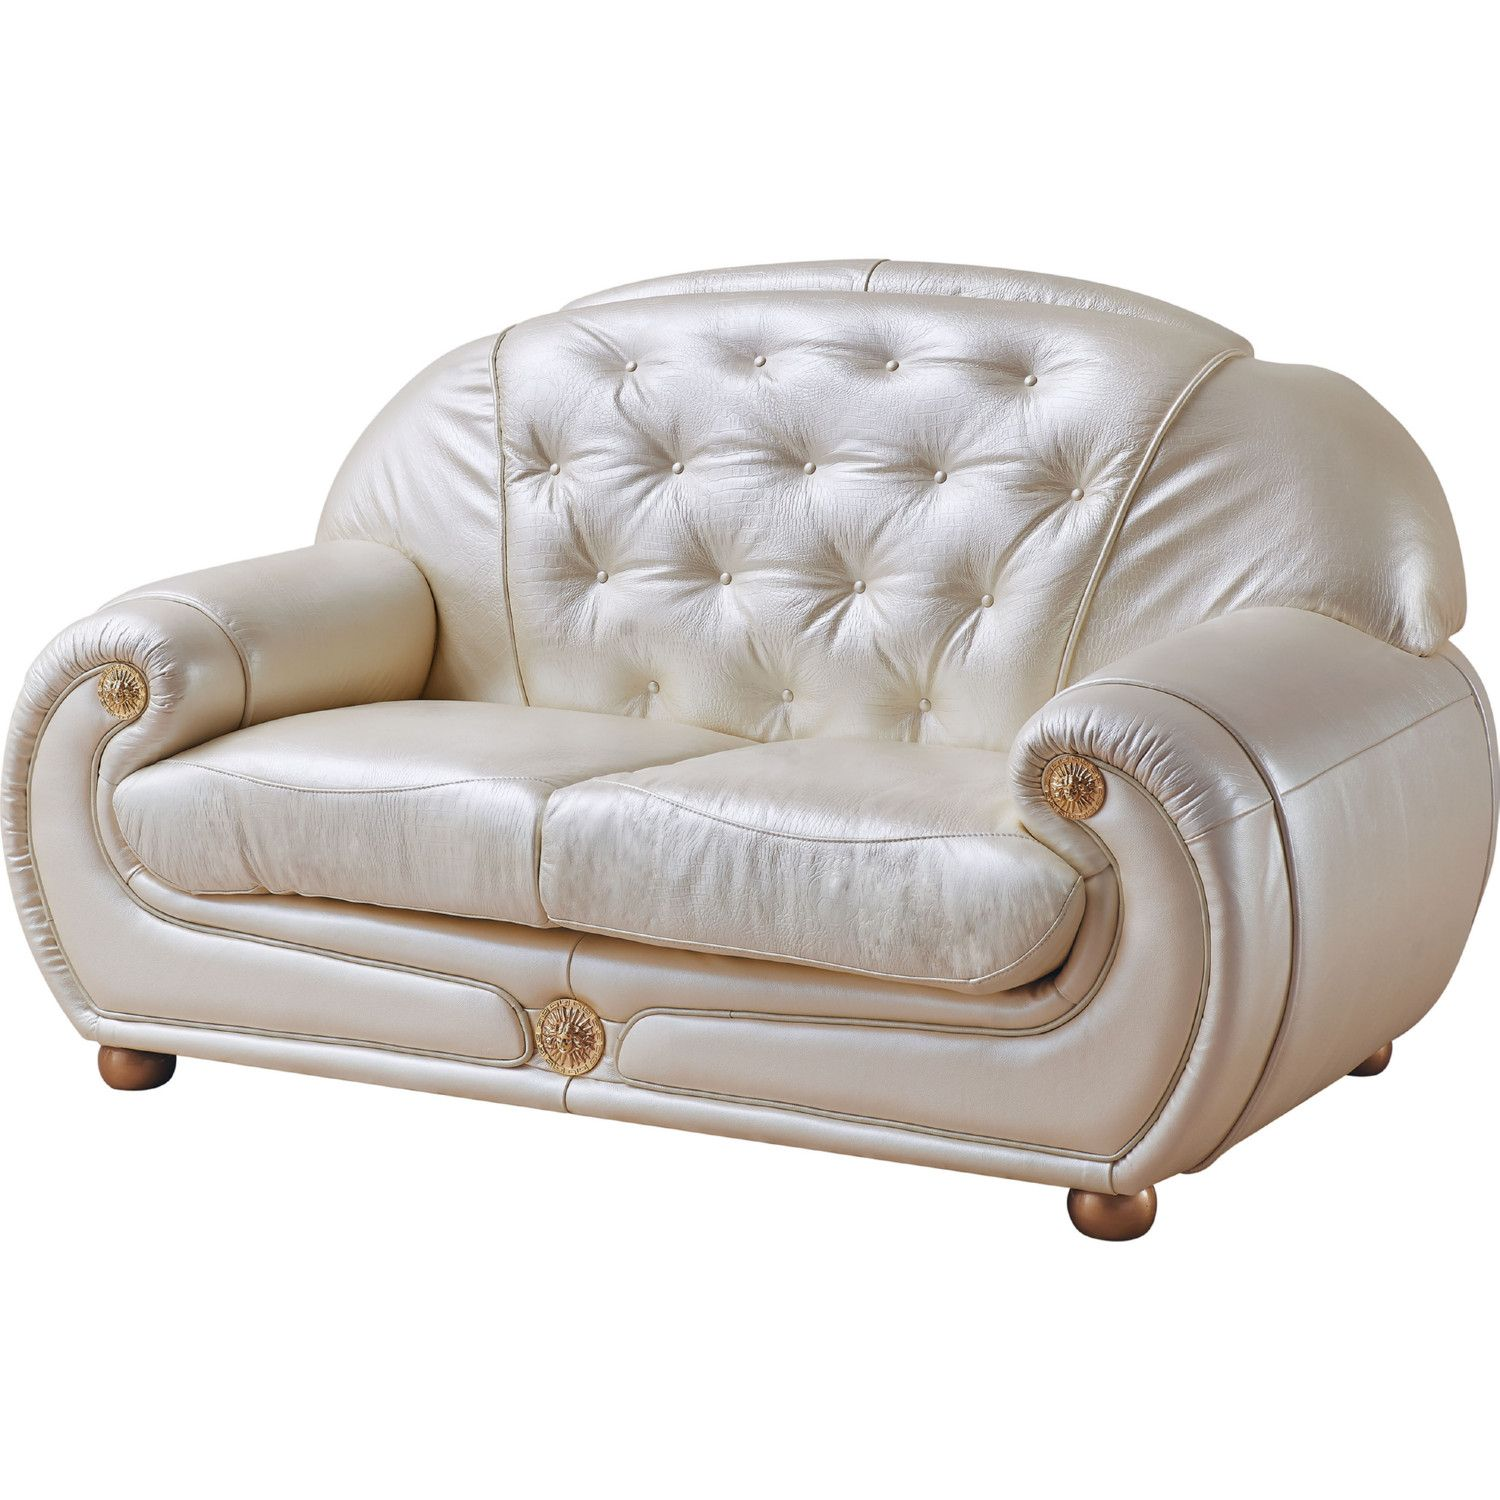 Admirable Giza Loveseat In Tufted Beige Ivory Leather By Esf Furniture Uwap Interior Chair Design Uwaporg